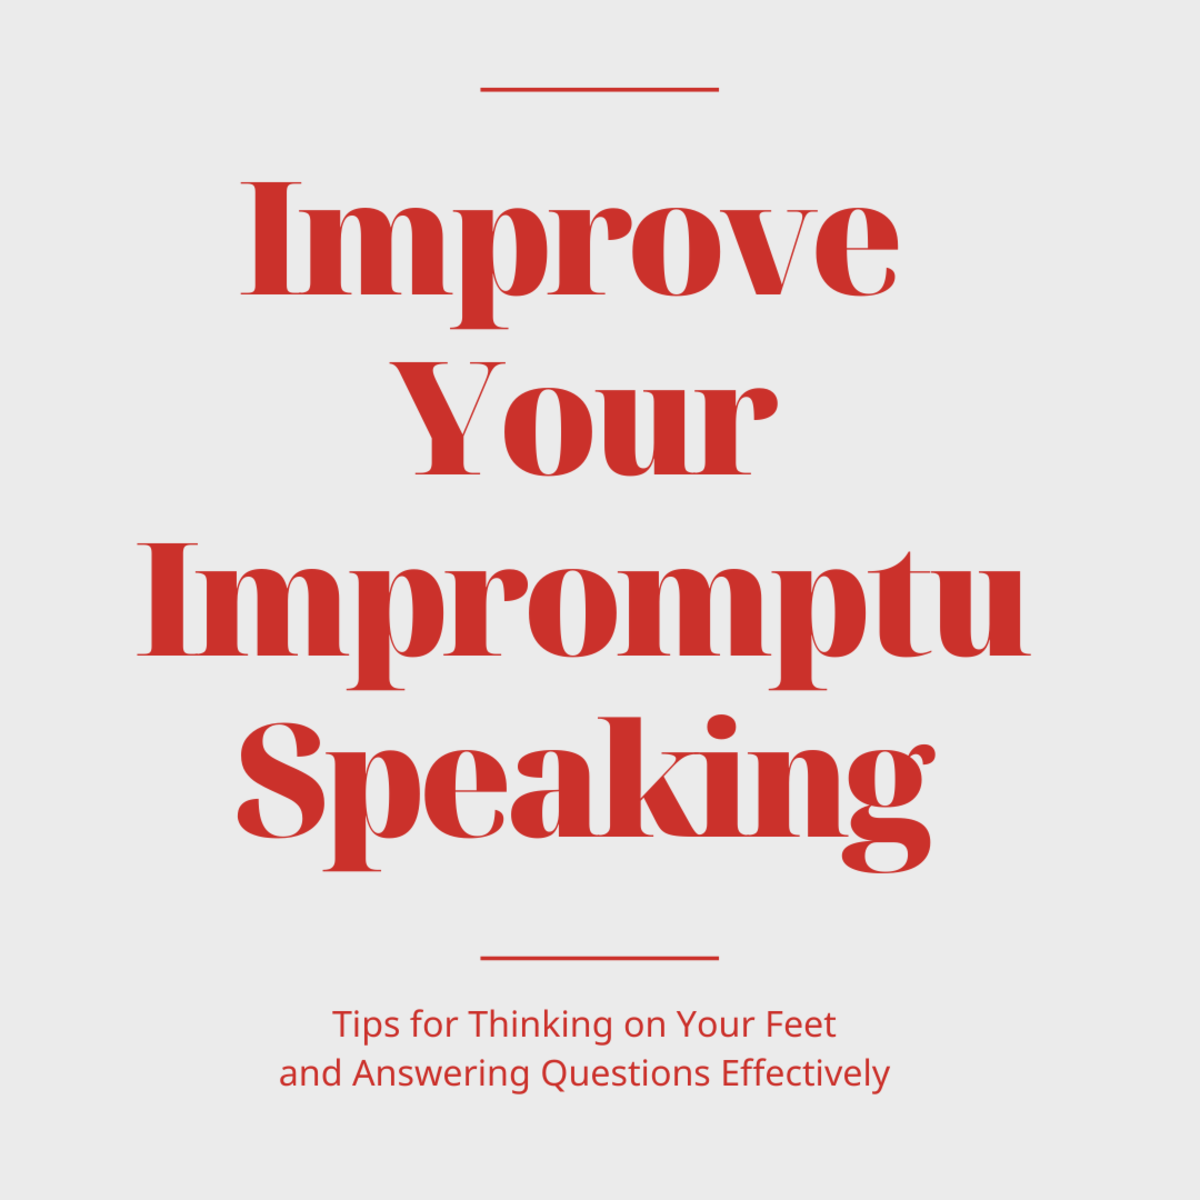 Get advice for becoming a better impromptu speaker.